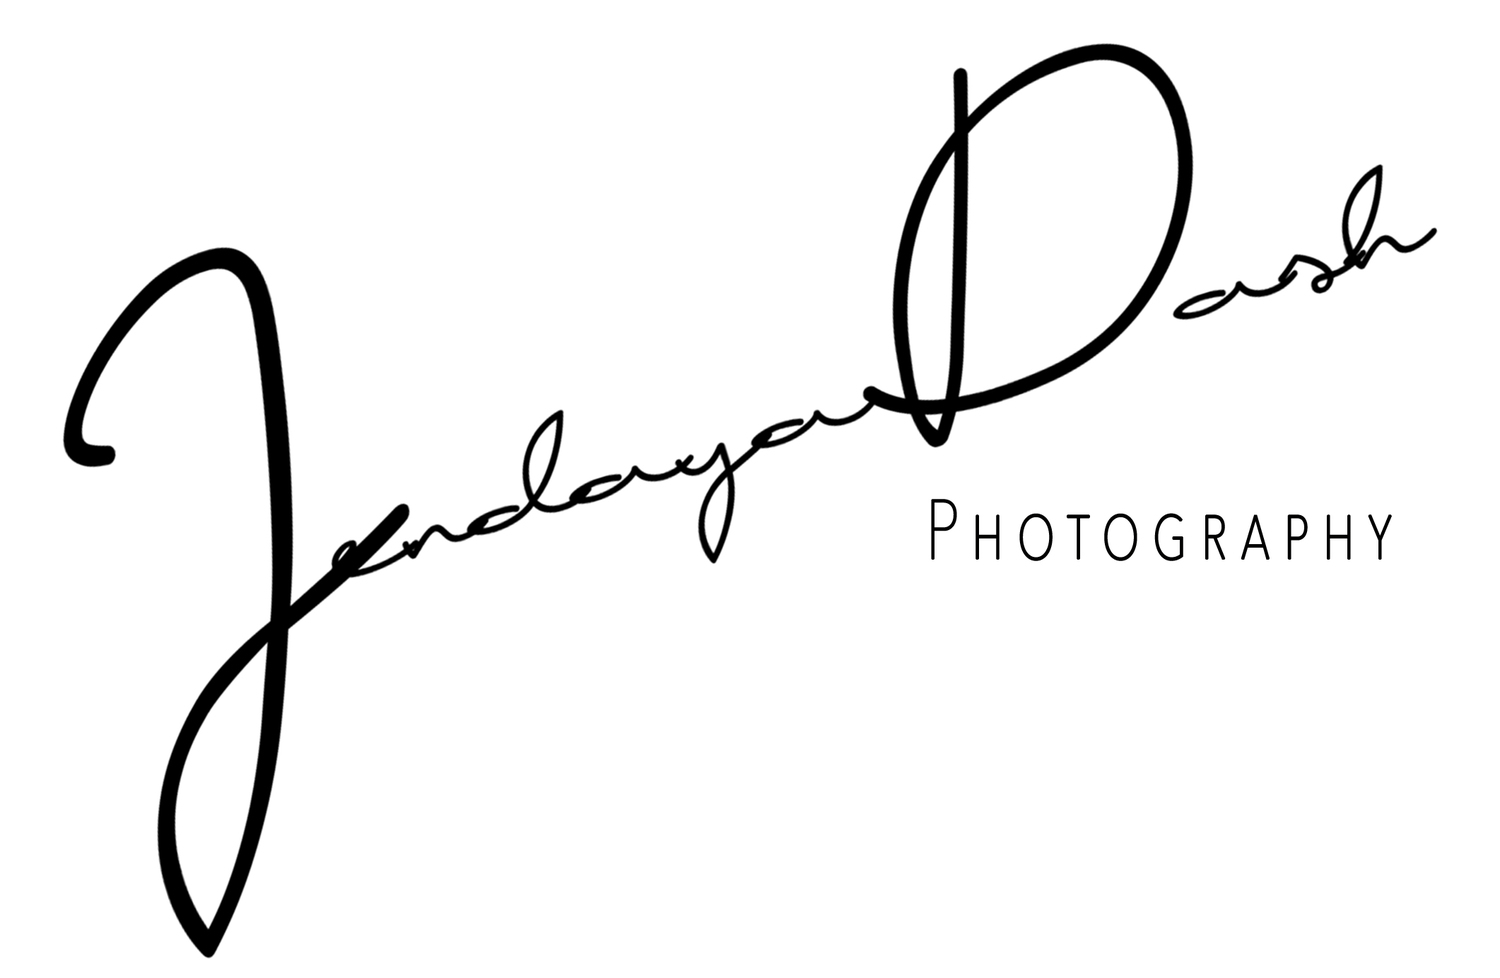 JENDAYA DASH PHOTOGRAPHY